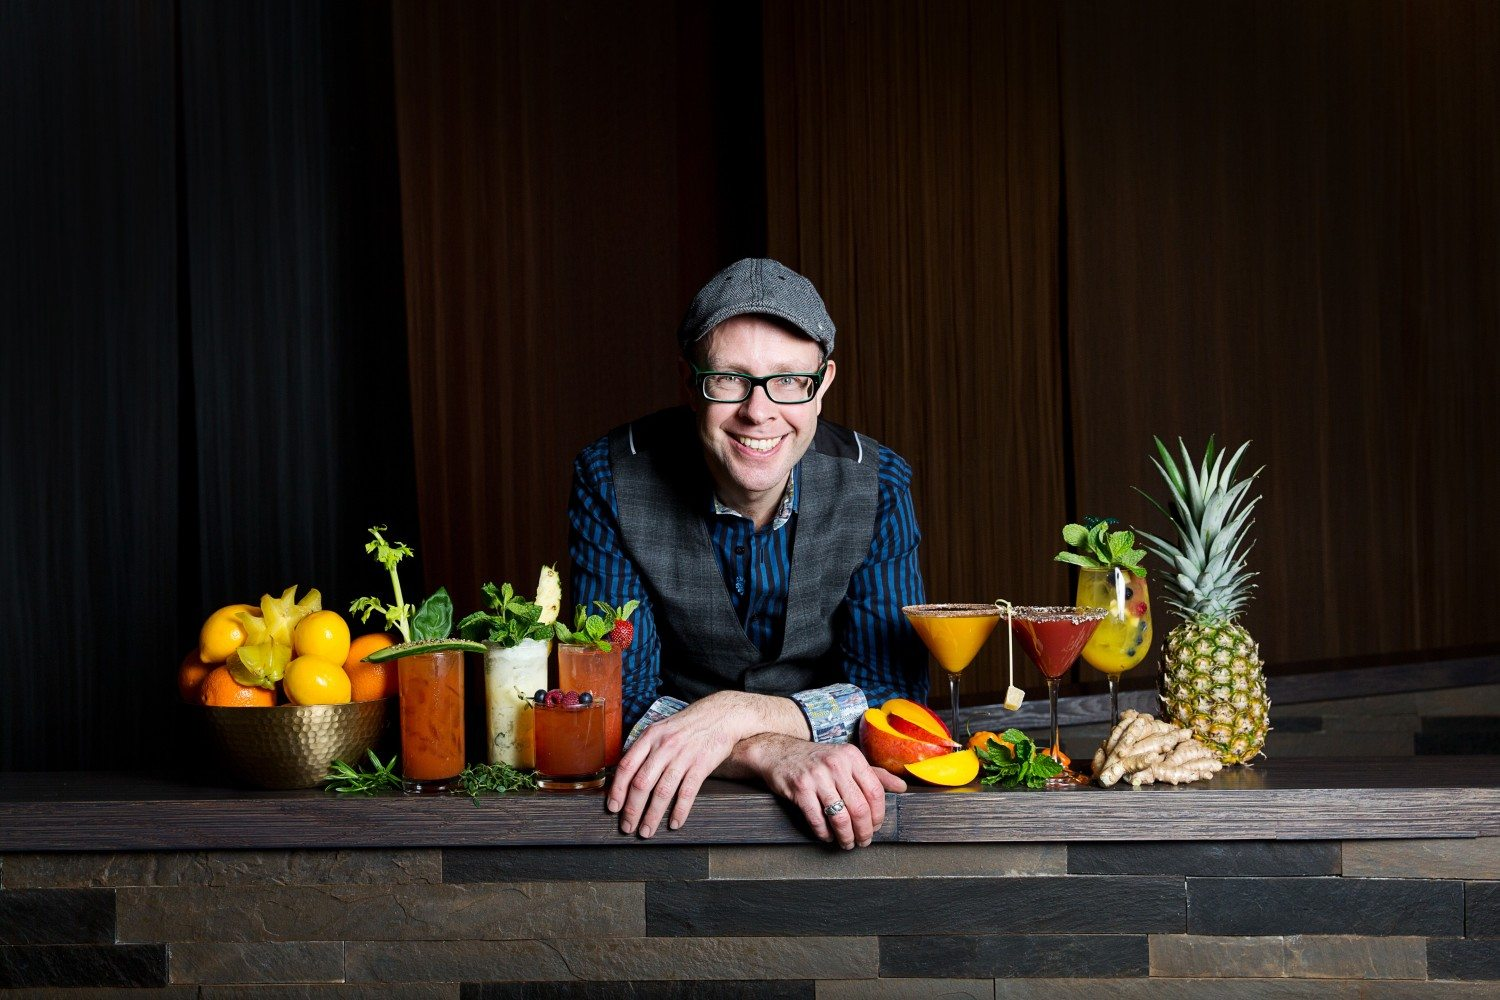 Adam Seger_Master Bartender, Corporate Sommelier_iPic Entertainment